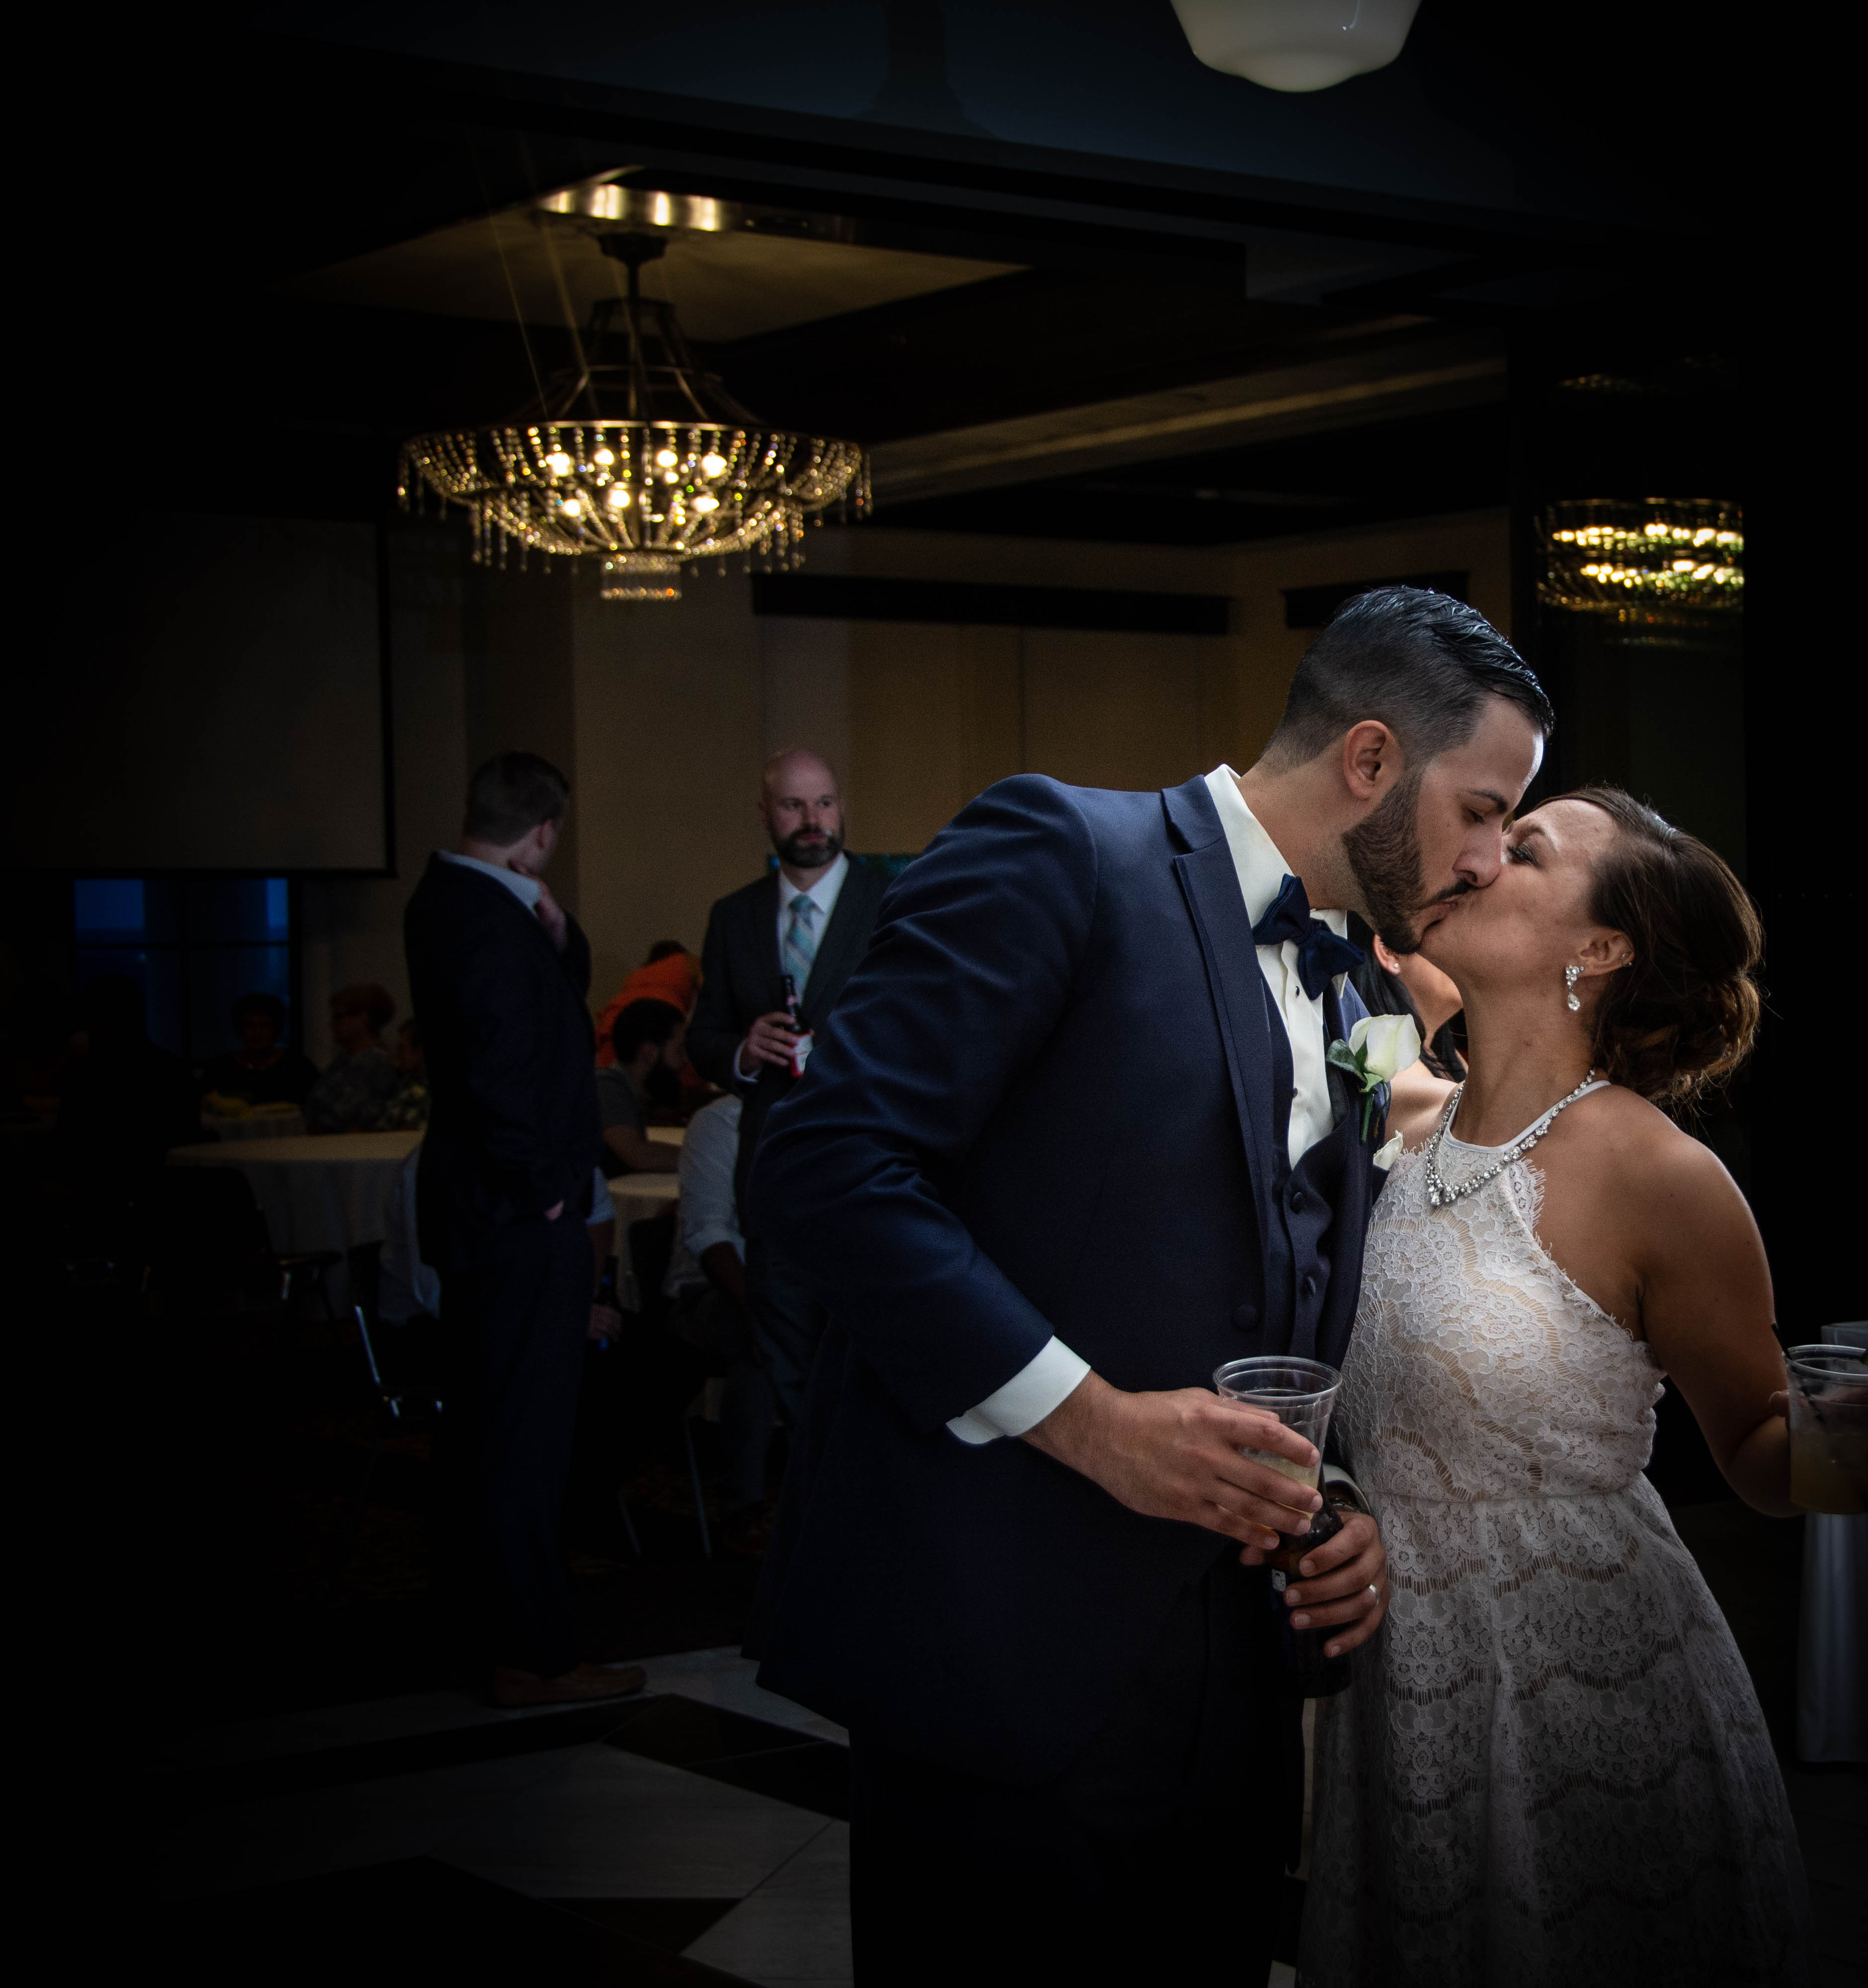 Kalamazoo, Michigan wedding photo